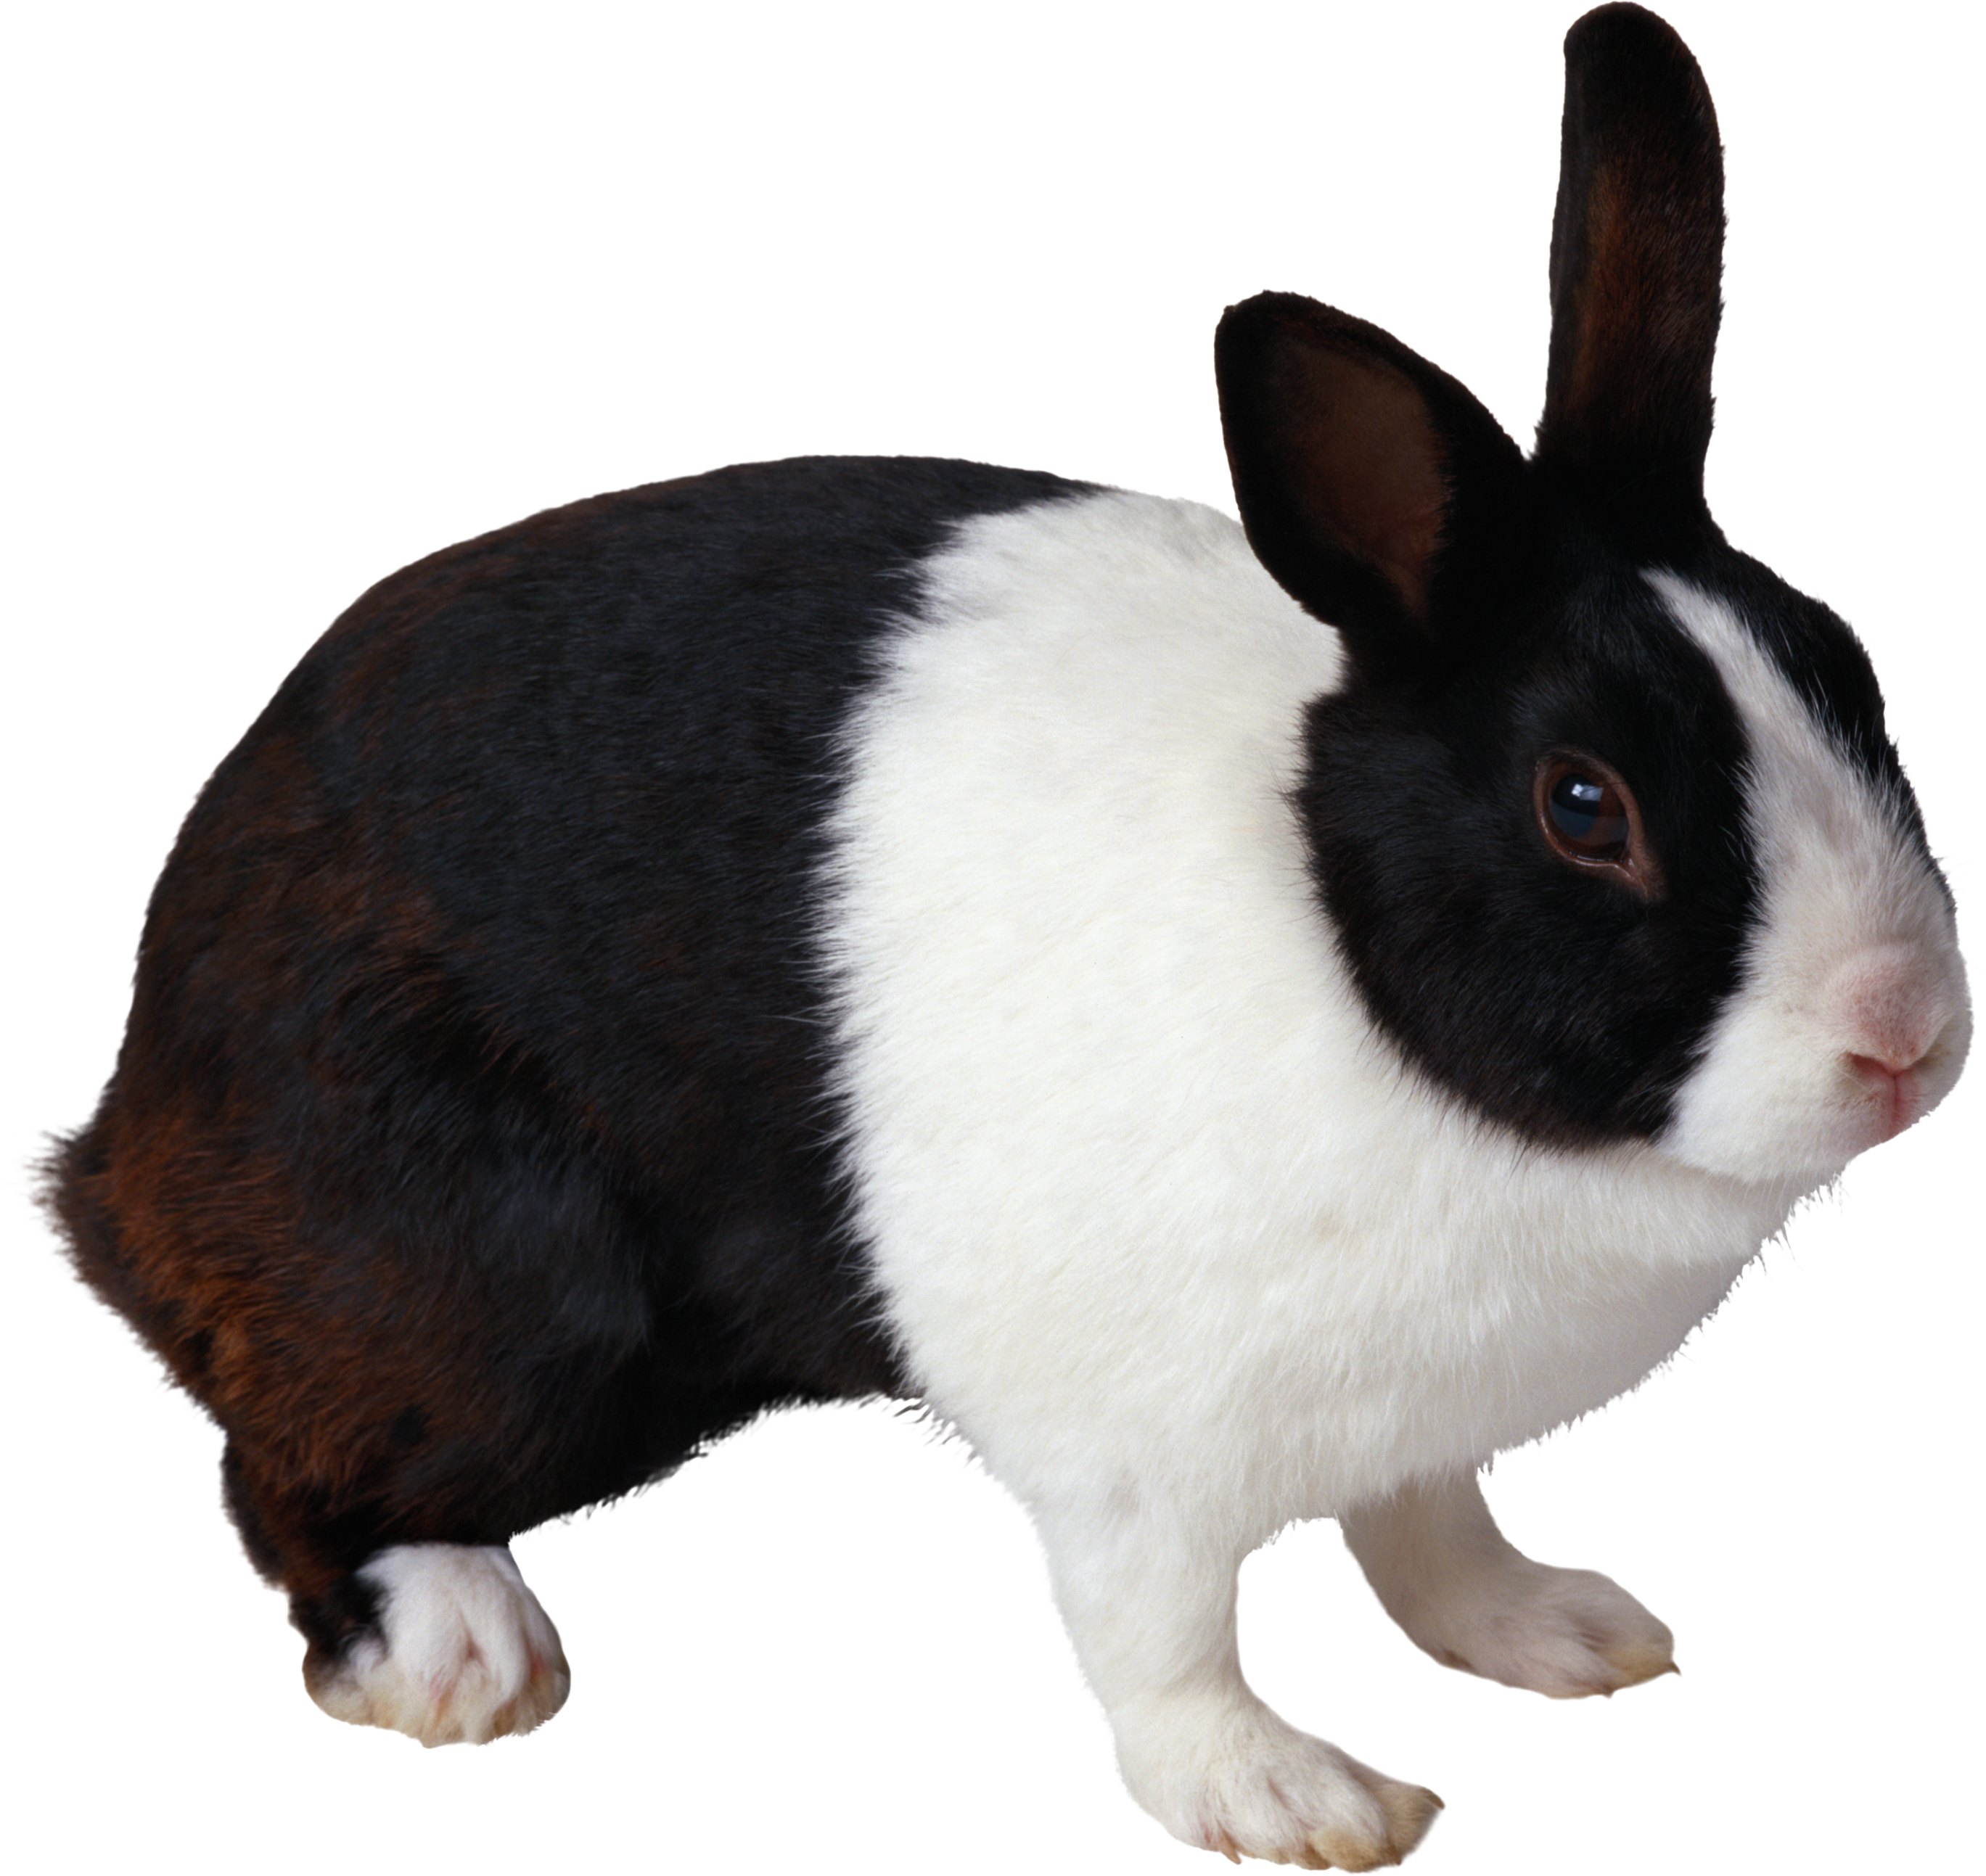 Rabbit PNG image - PNG Domestic Animals